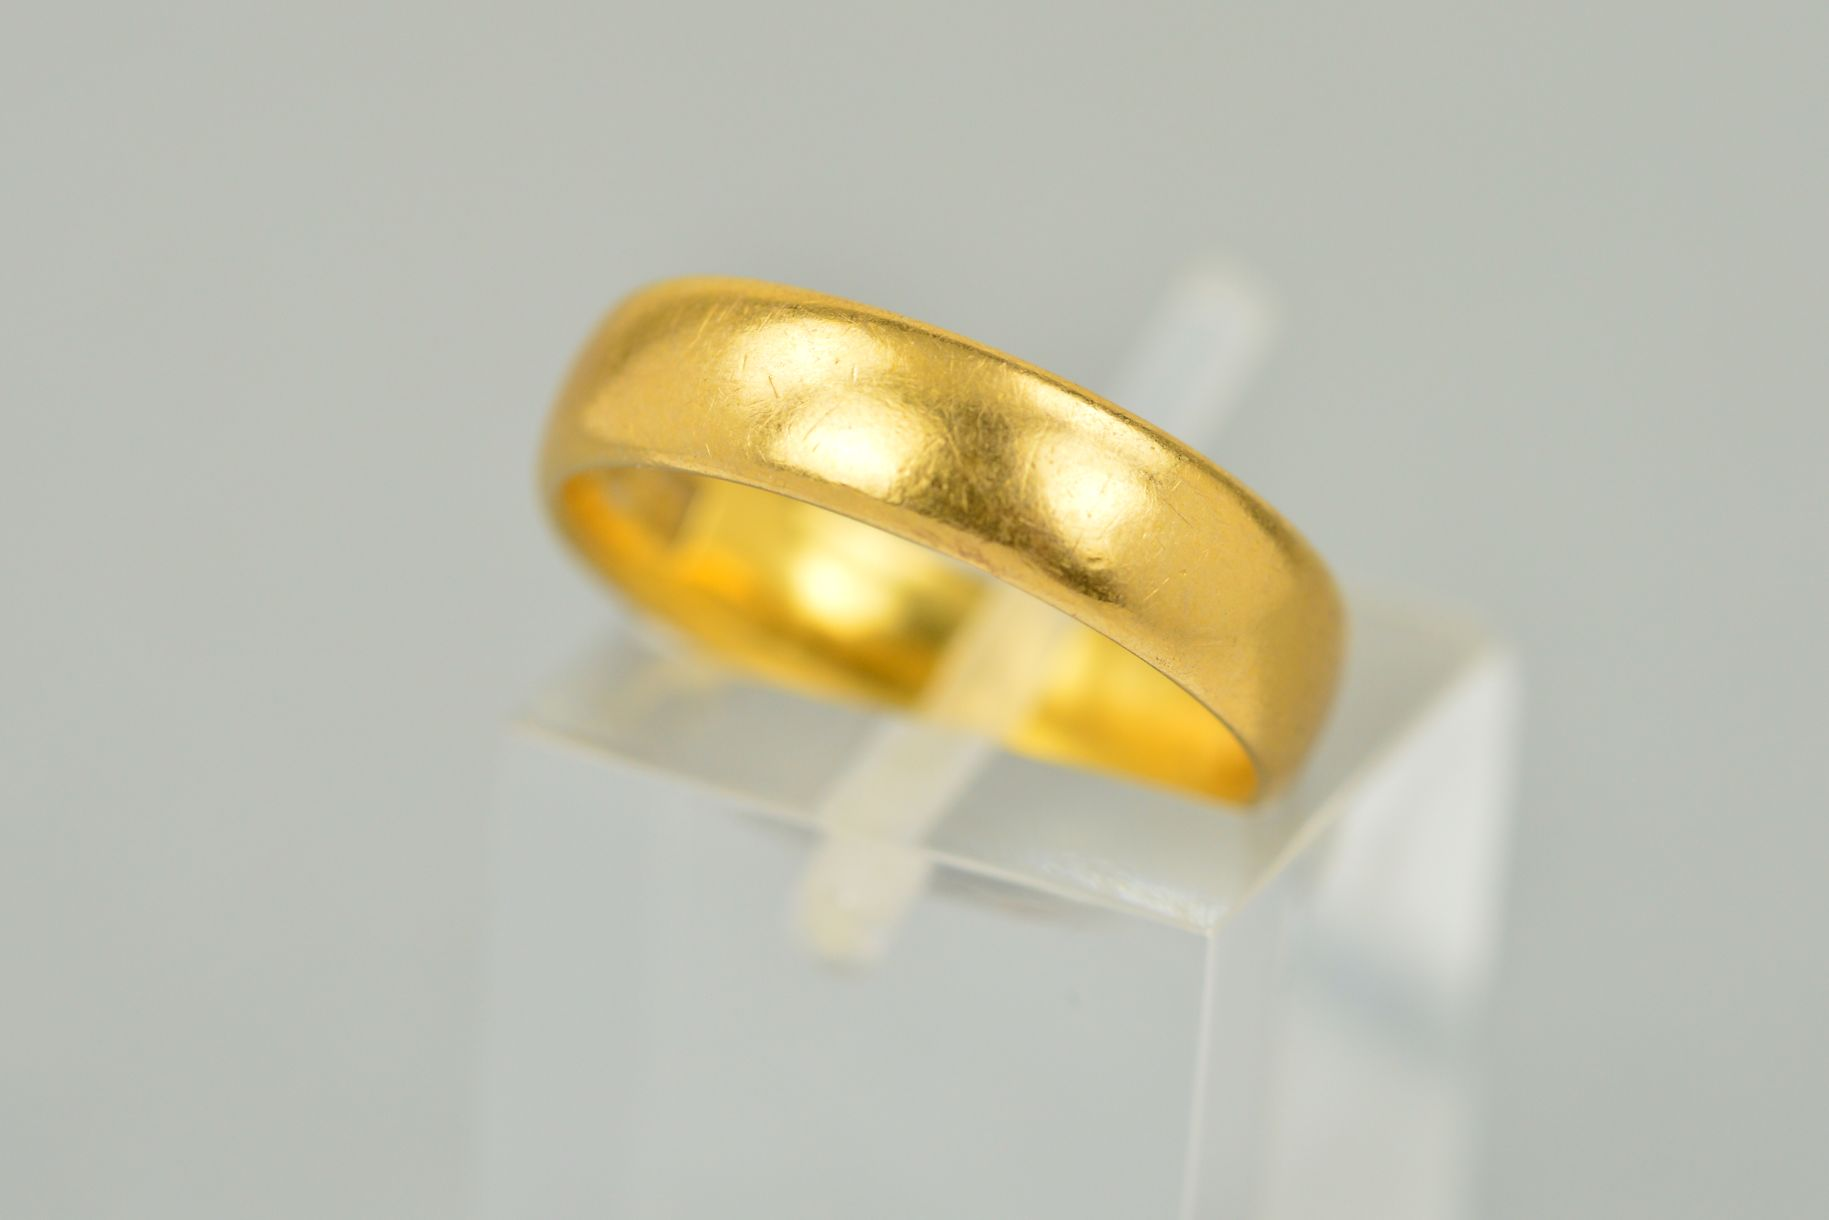 Lot 59 - AN EARLY 20TH CENTURY 22CT GOLD WEDDING RING, measuring approximately 4.8mm in width, ring size K,